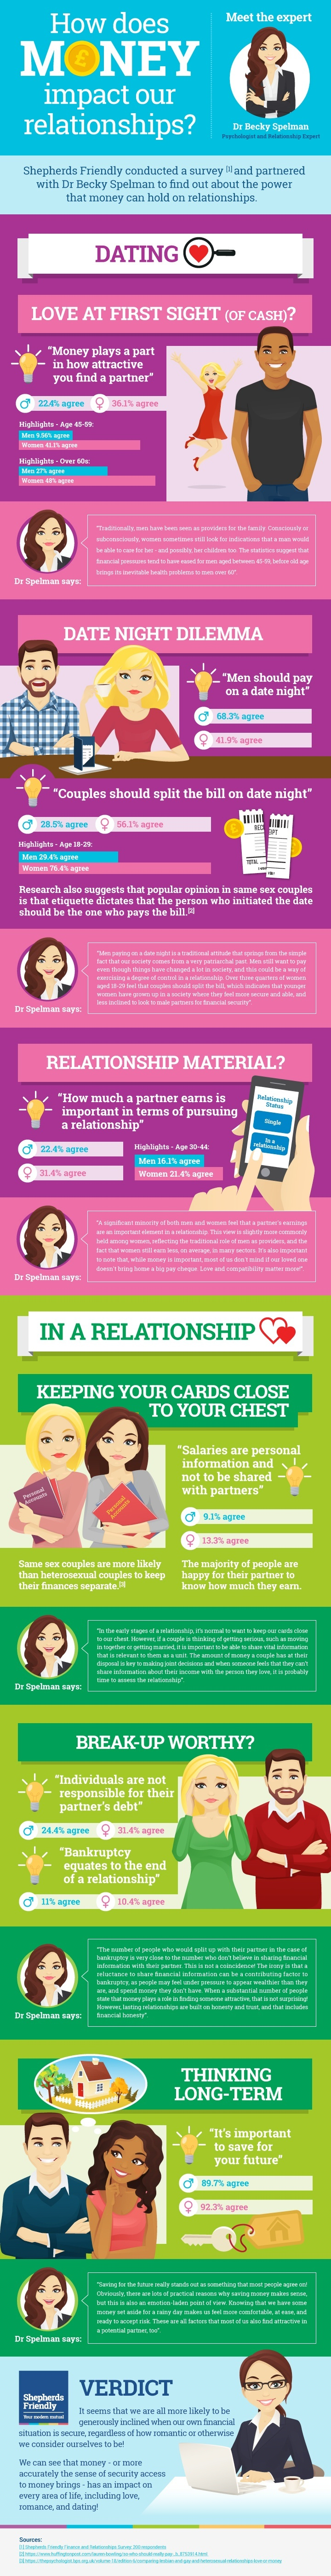 an infographic about finances and relationships and the results of a recent survey